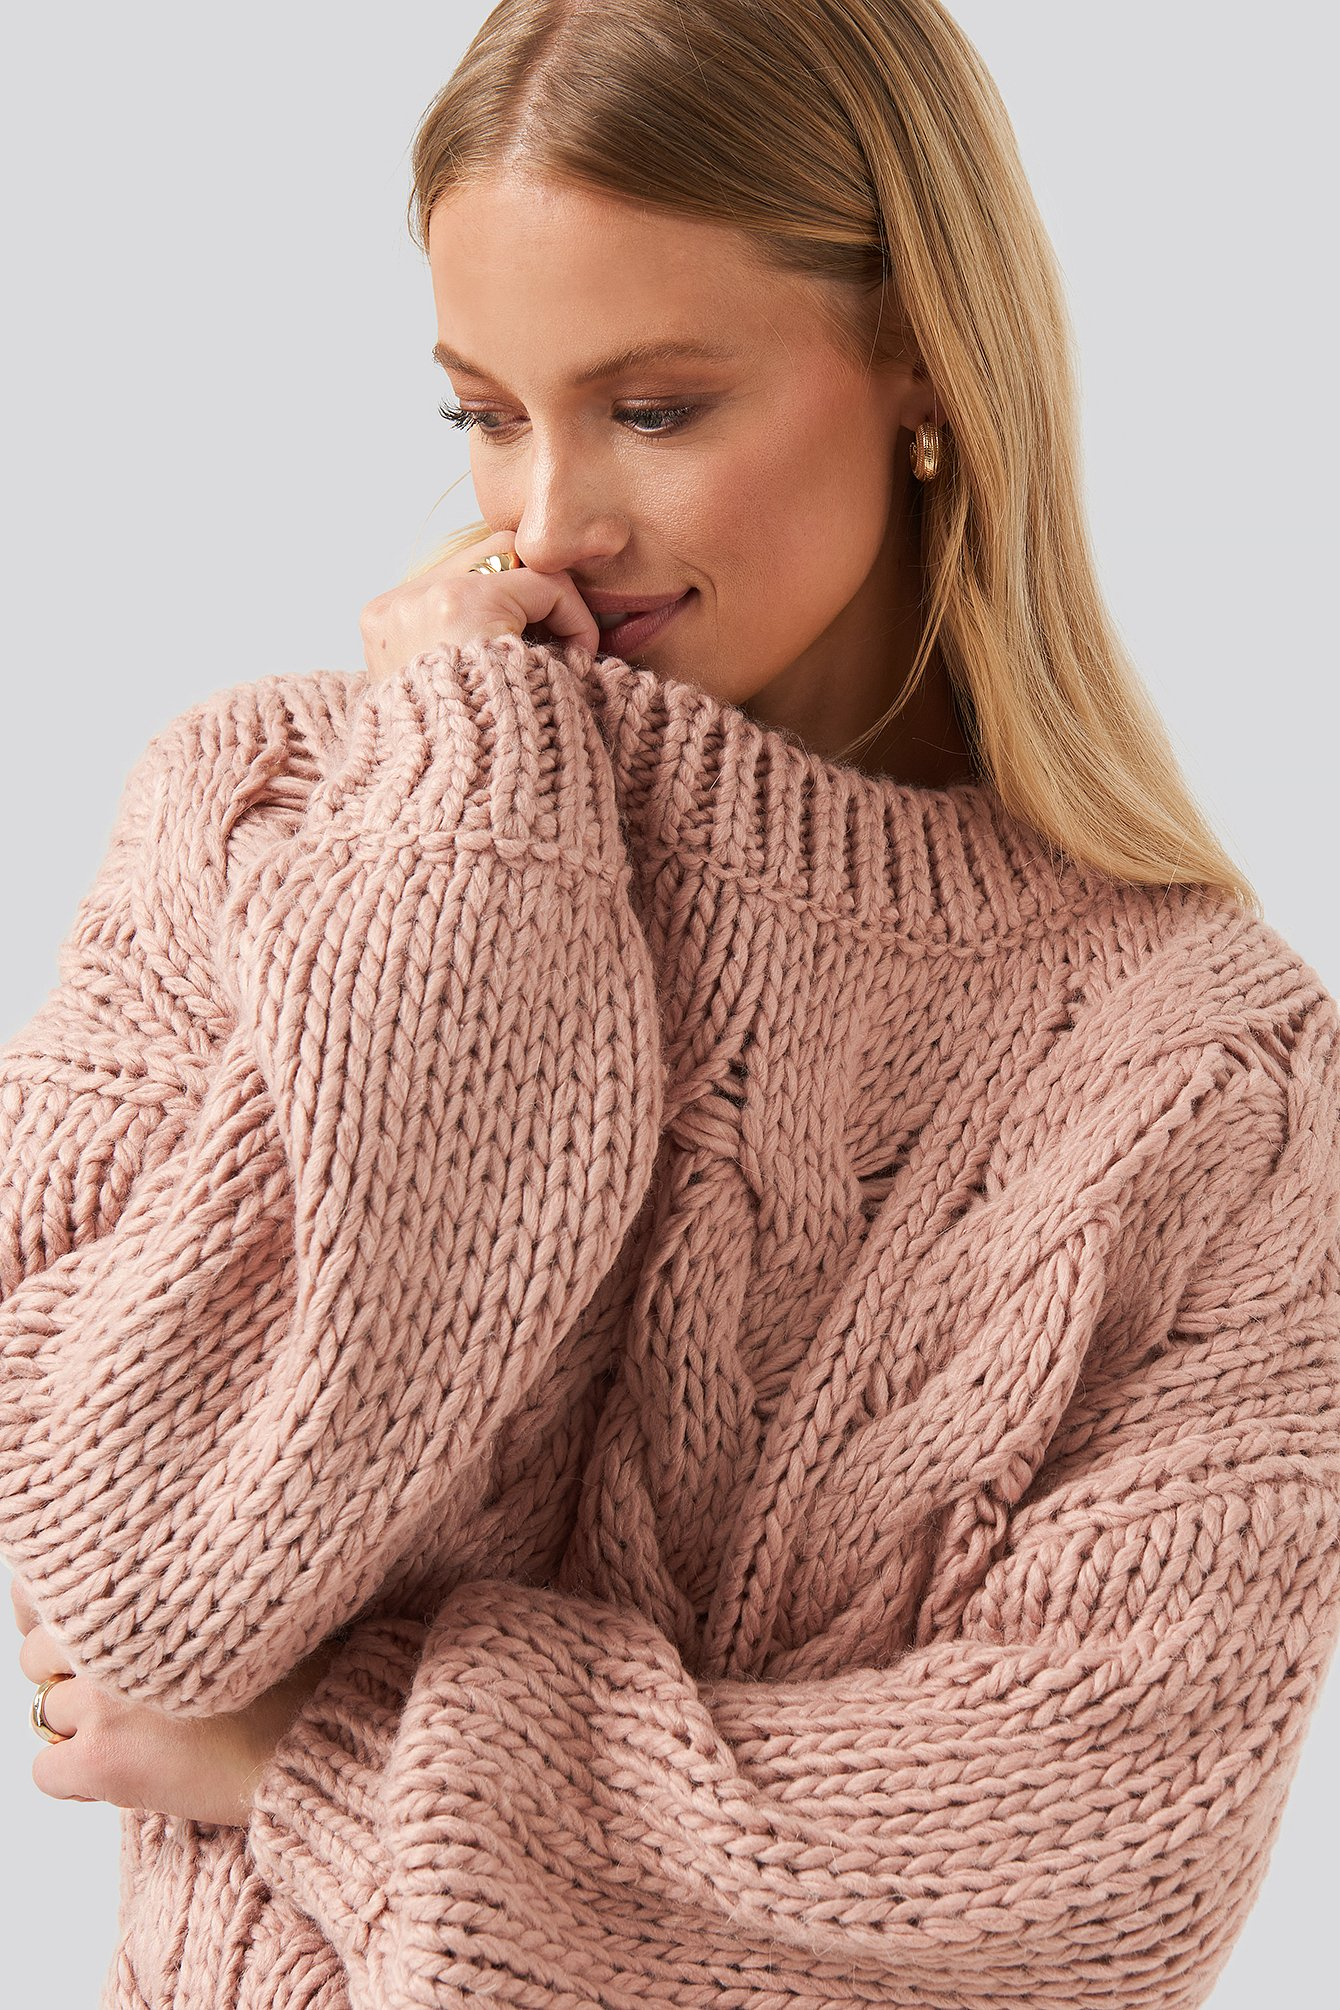 Round Neck Heavy Knitted Cable Sweater Rosa by Na Kd Trend